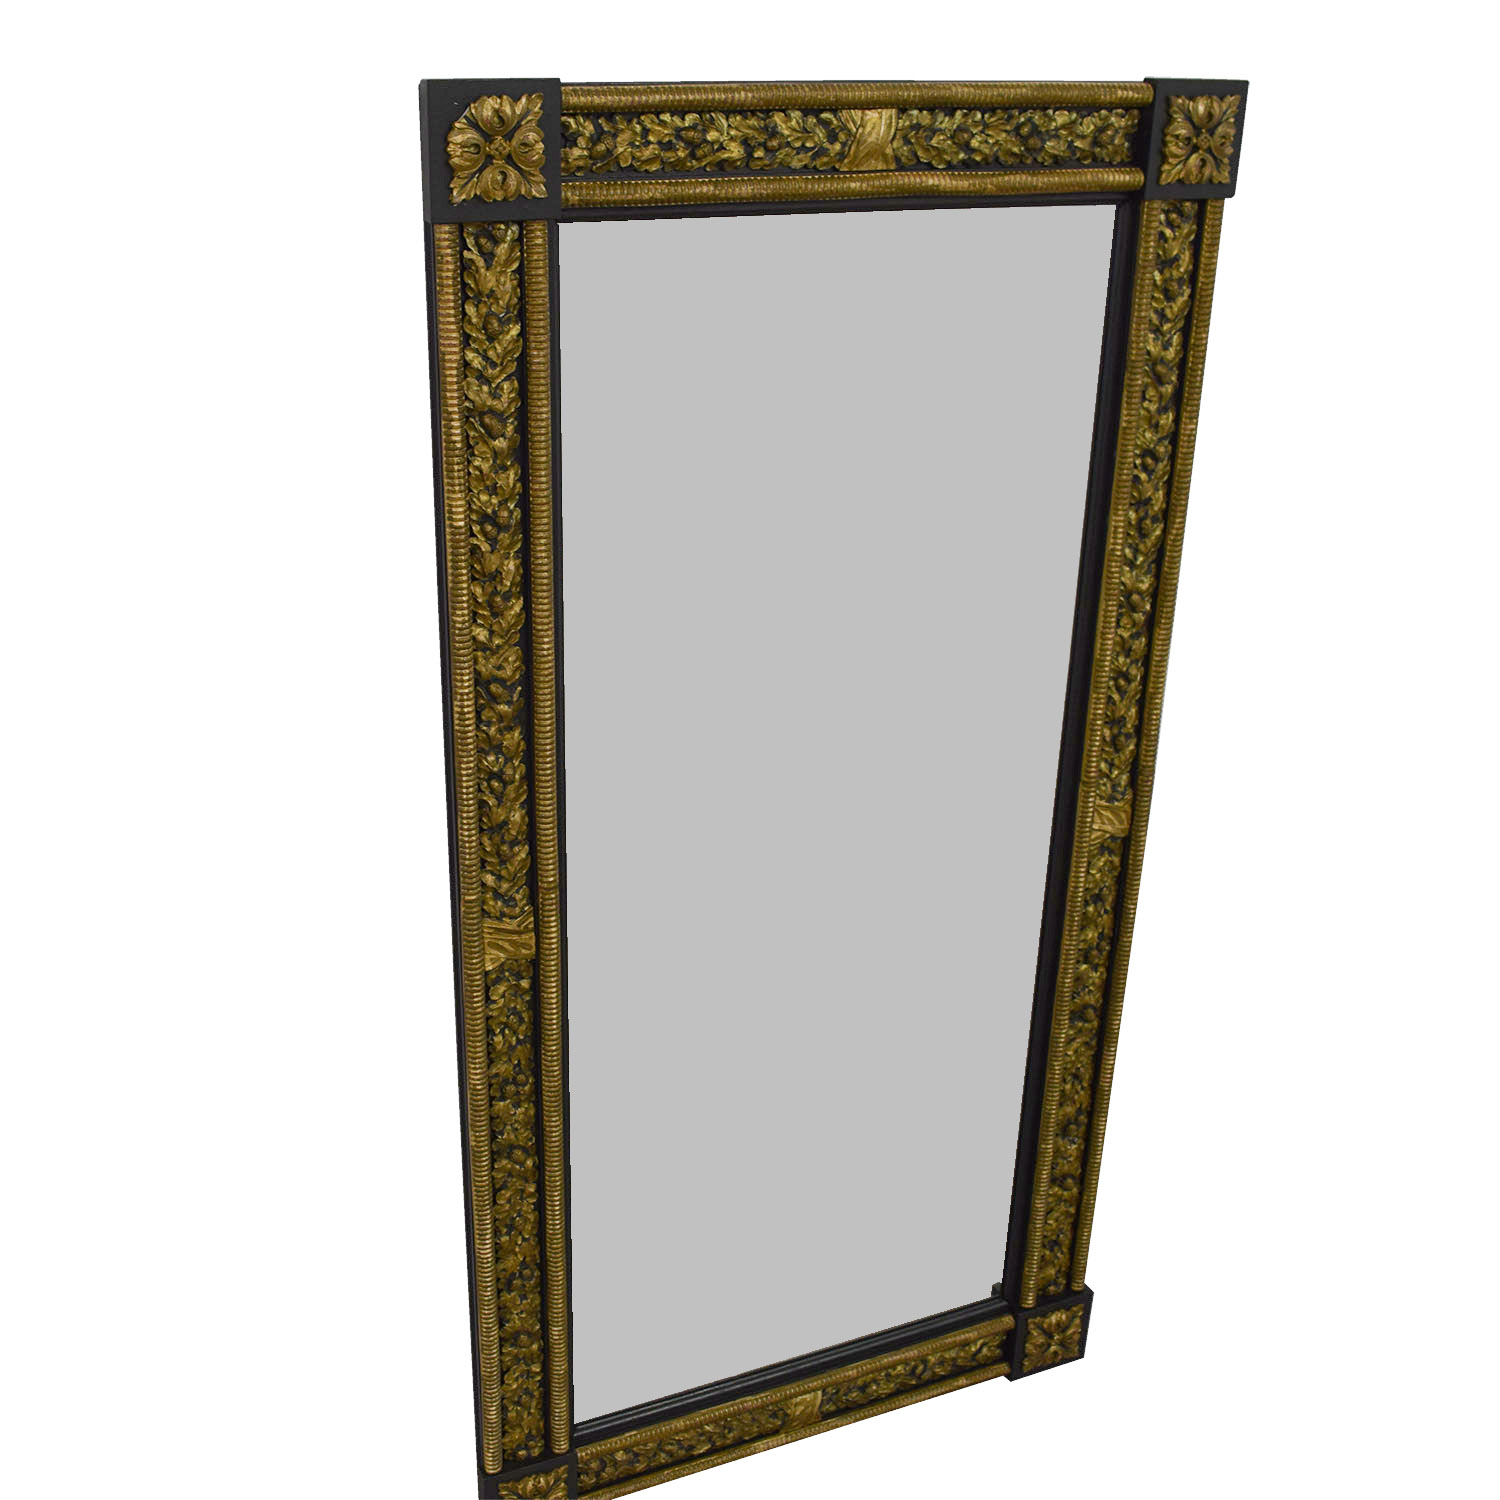 82 off gold and silver framed wall mirror decor for Silver framed mirror